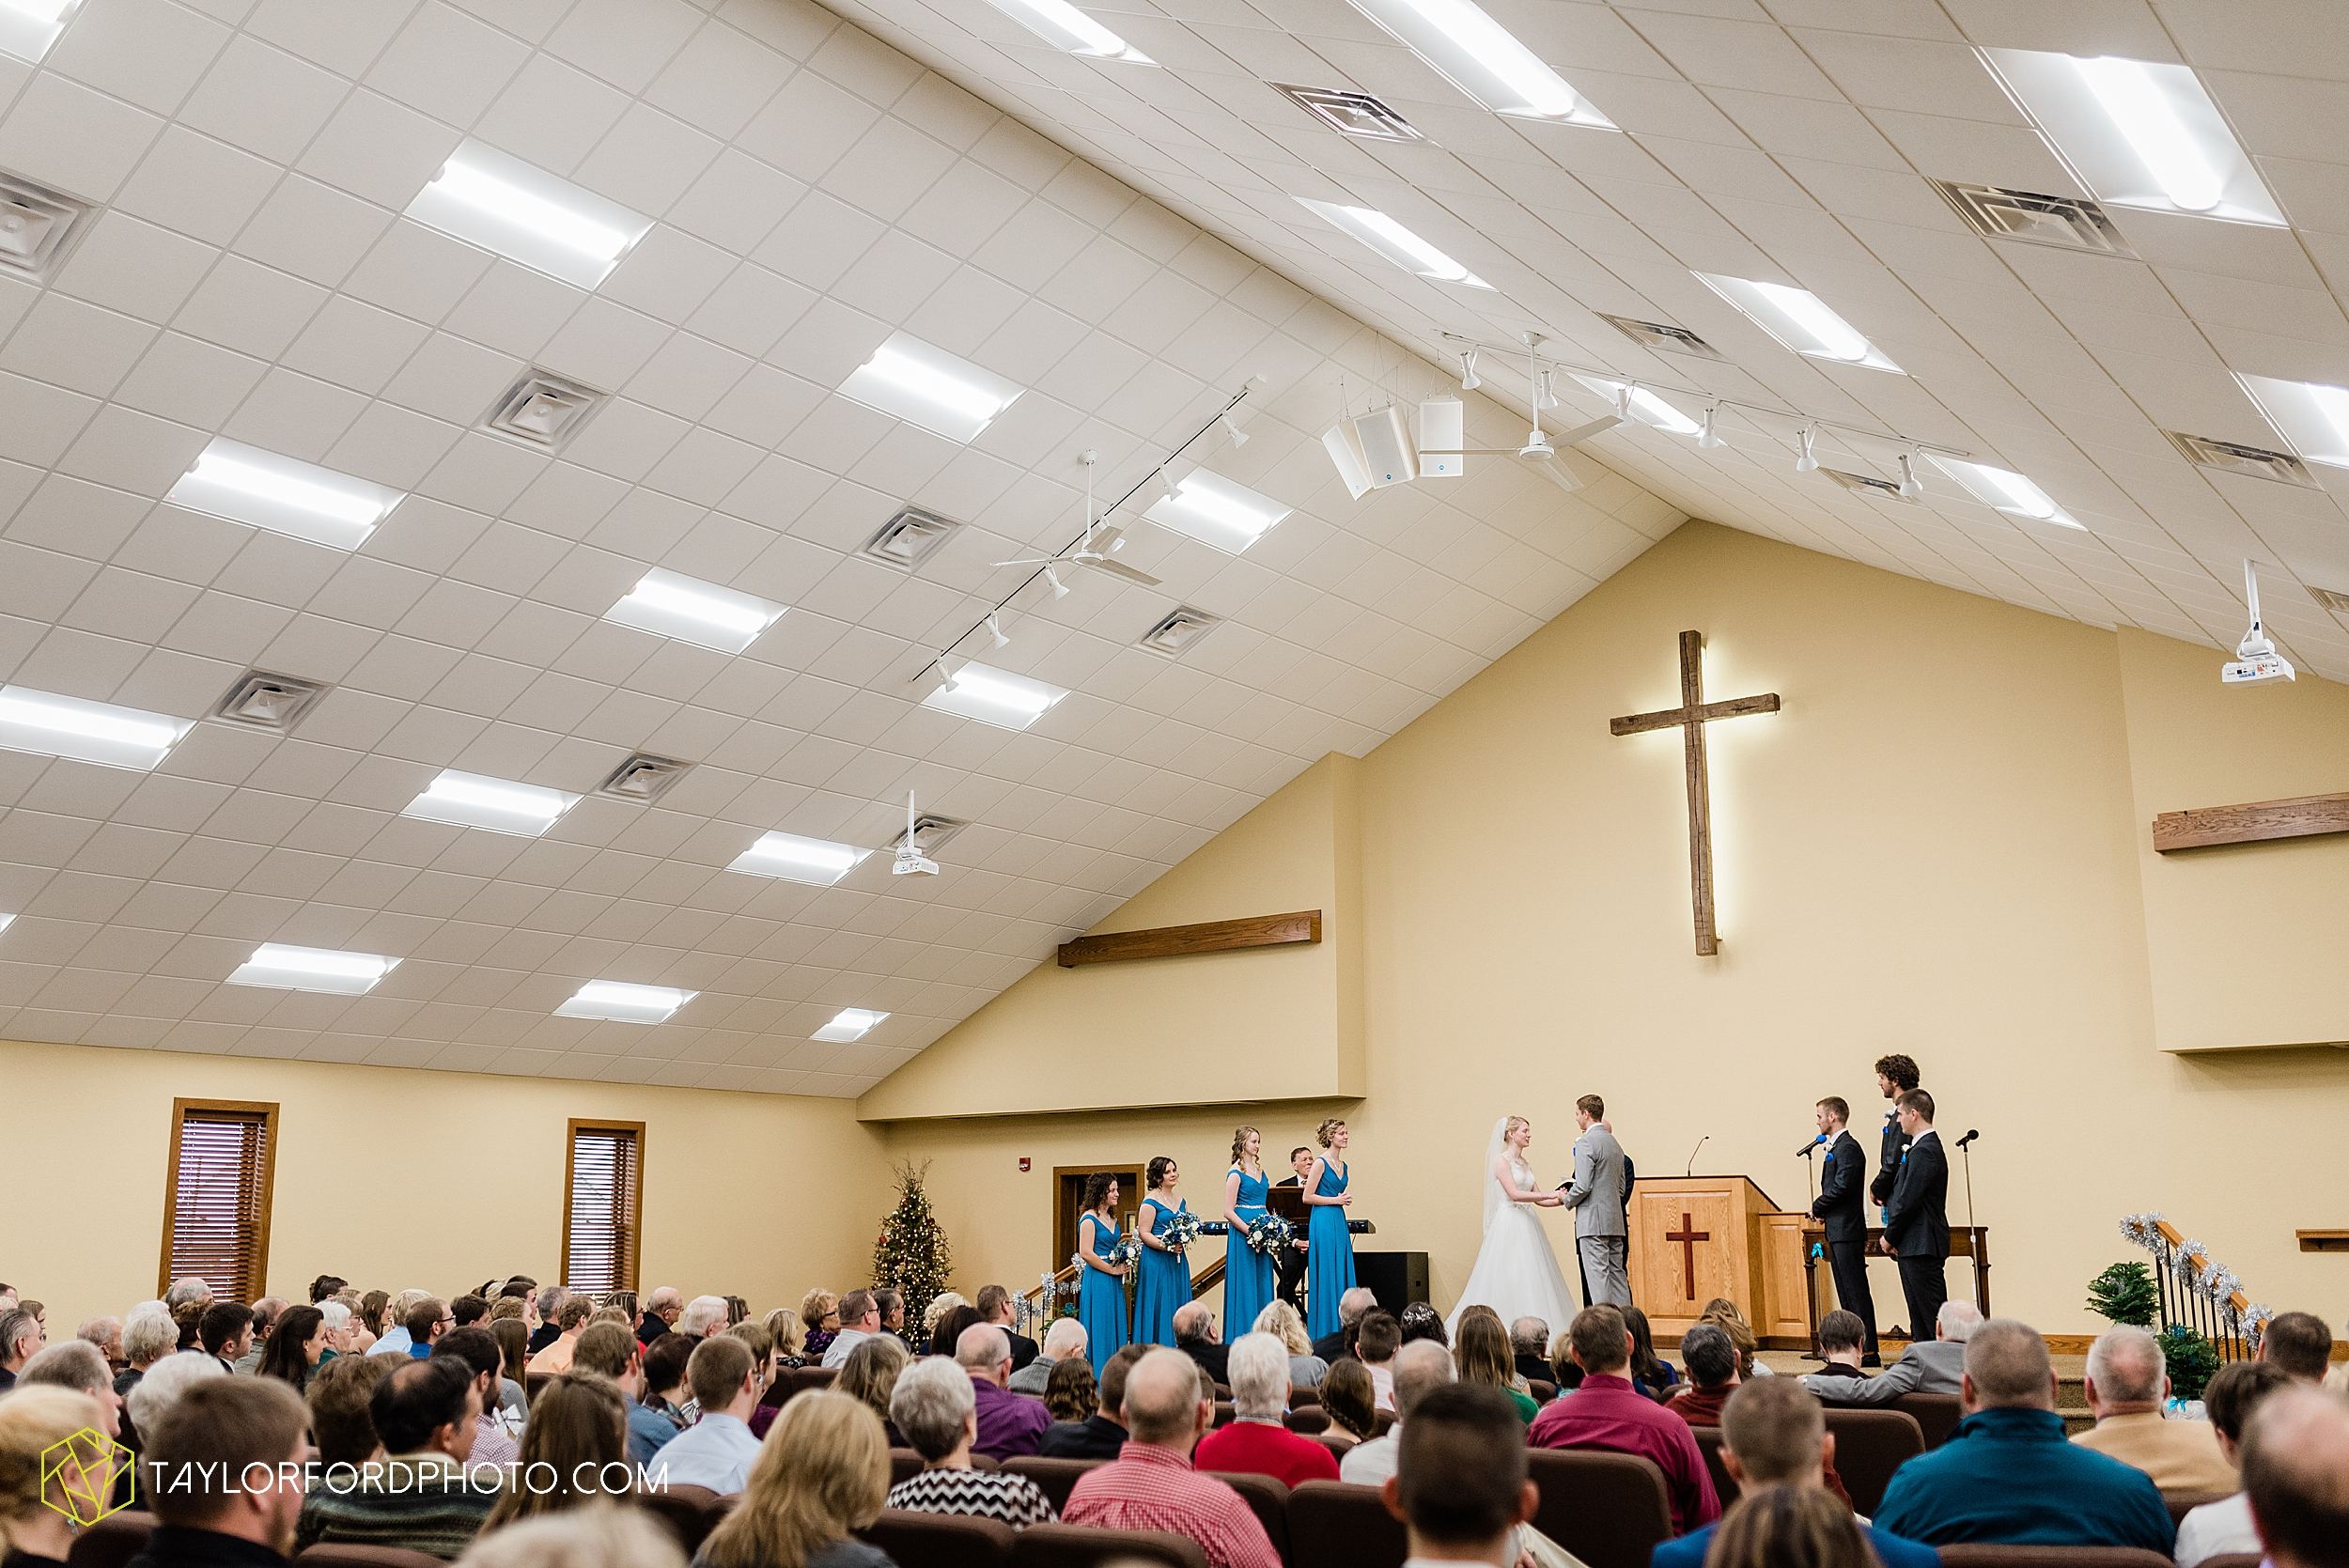 pleasant-view-church-christmas-celina-fraternal-order-of-eagles-reception-wedding-wren-willshire-van-wert-ohio-photography-taylor-ford-hirschy-photographer_2153.jpg